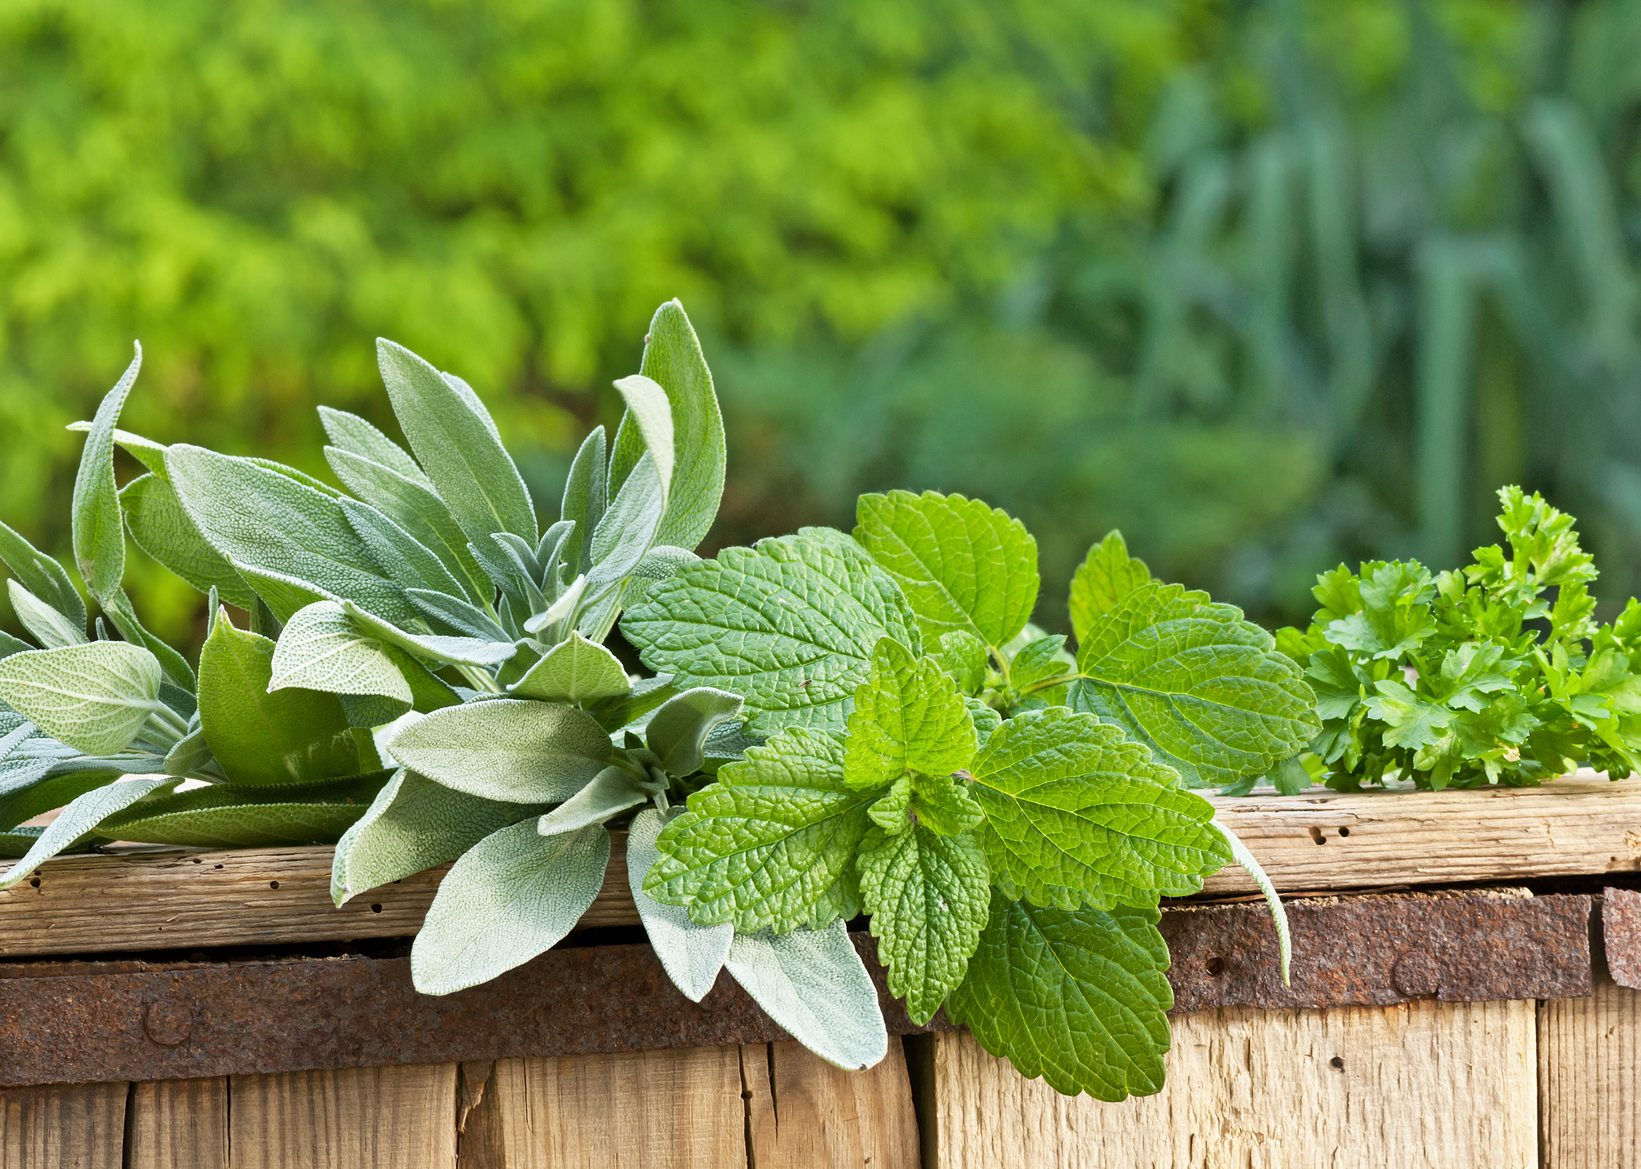 Companion Plants For Lemon Balm: What Are The Best Lemon Balm ...